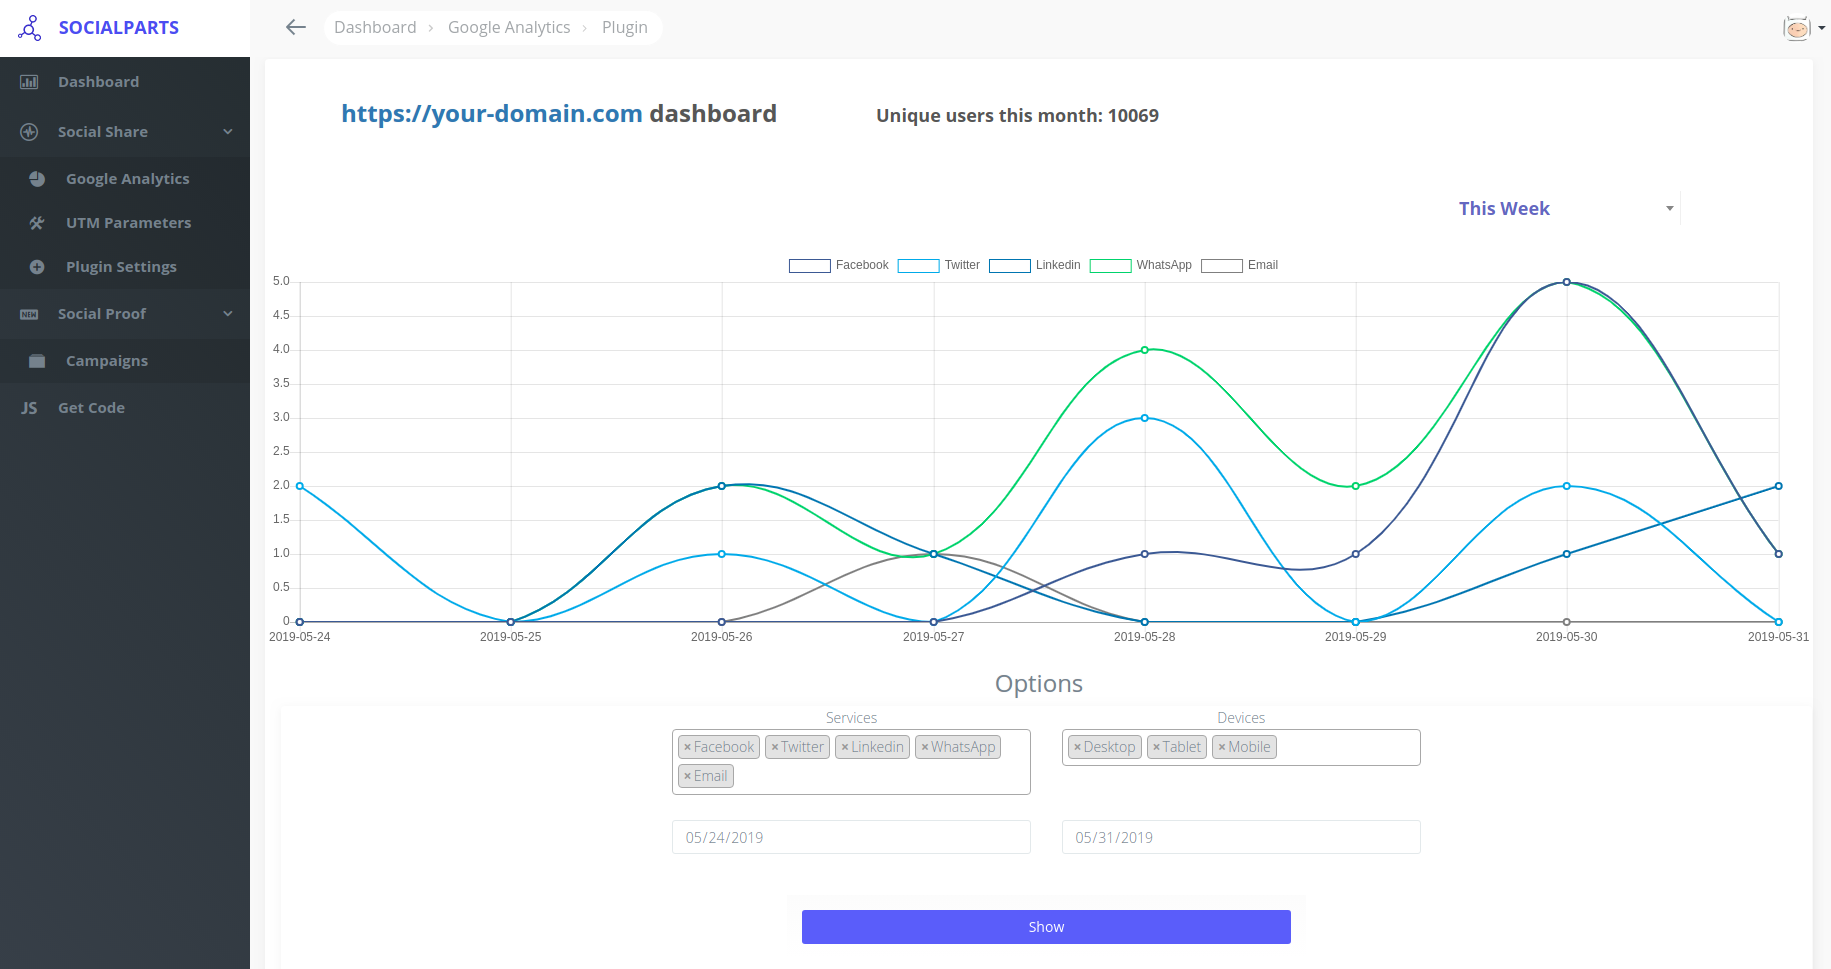 Social Share dashboard